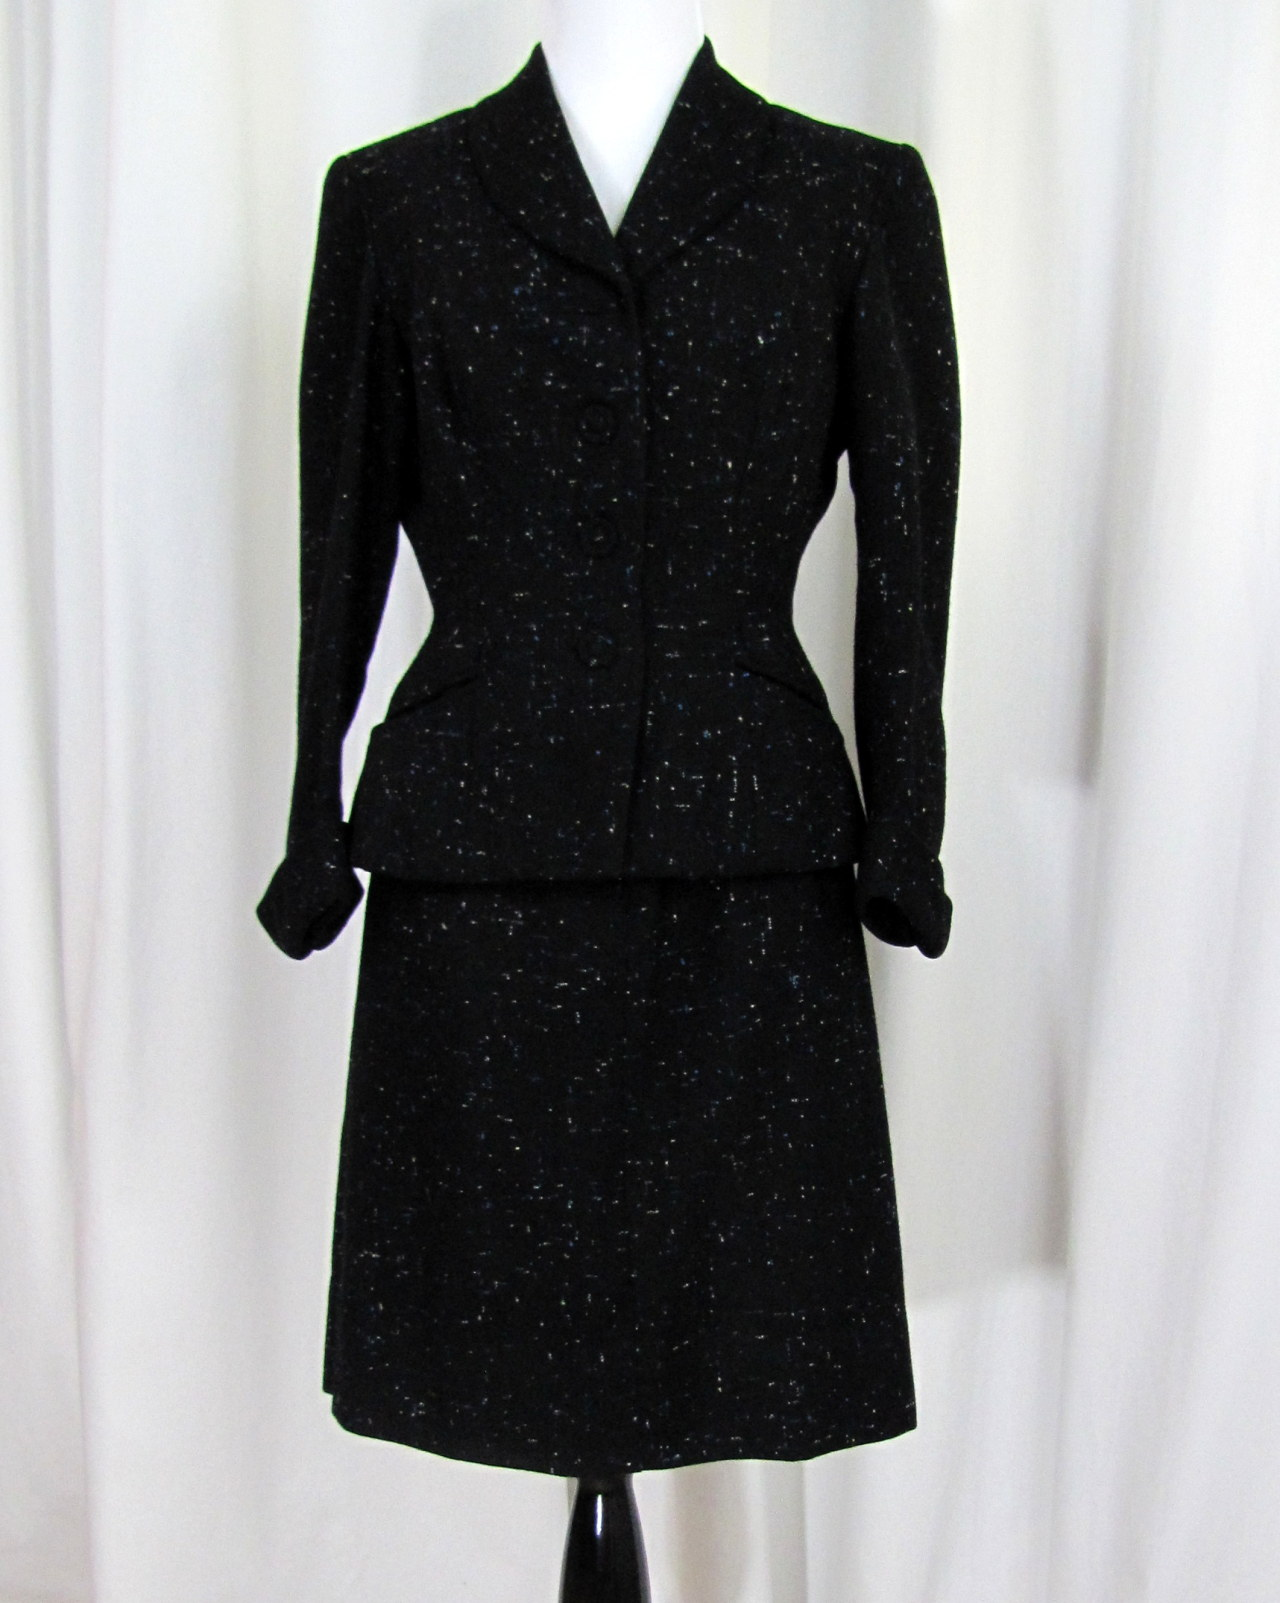 Now Available Vintage Suit   Custom Tailored Wool Suit   1960s   Small